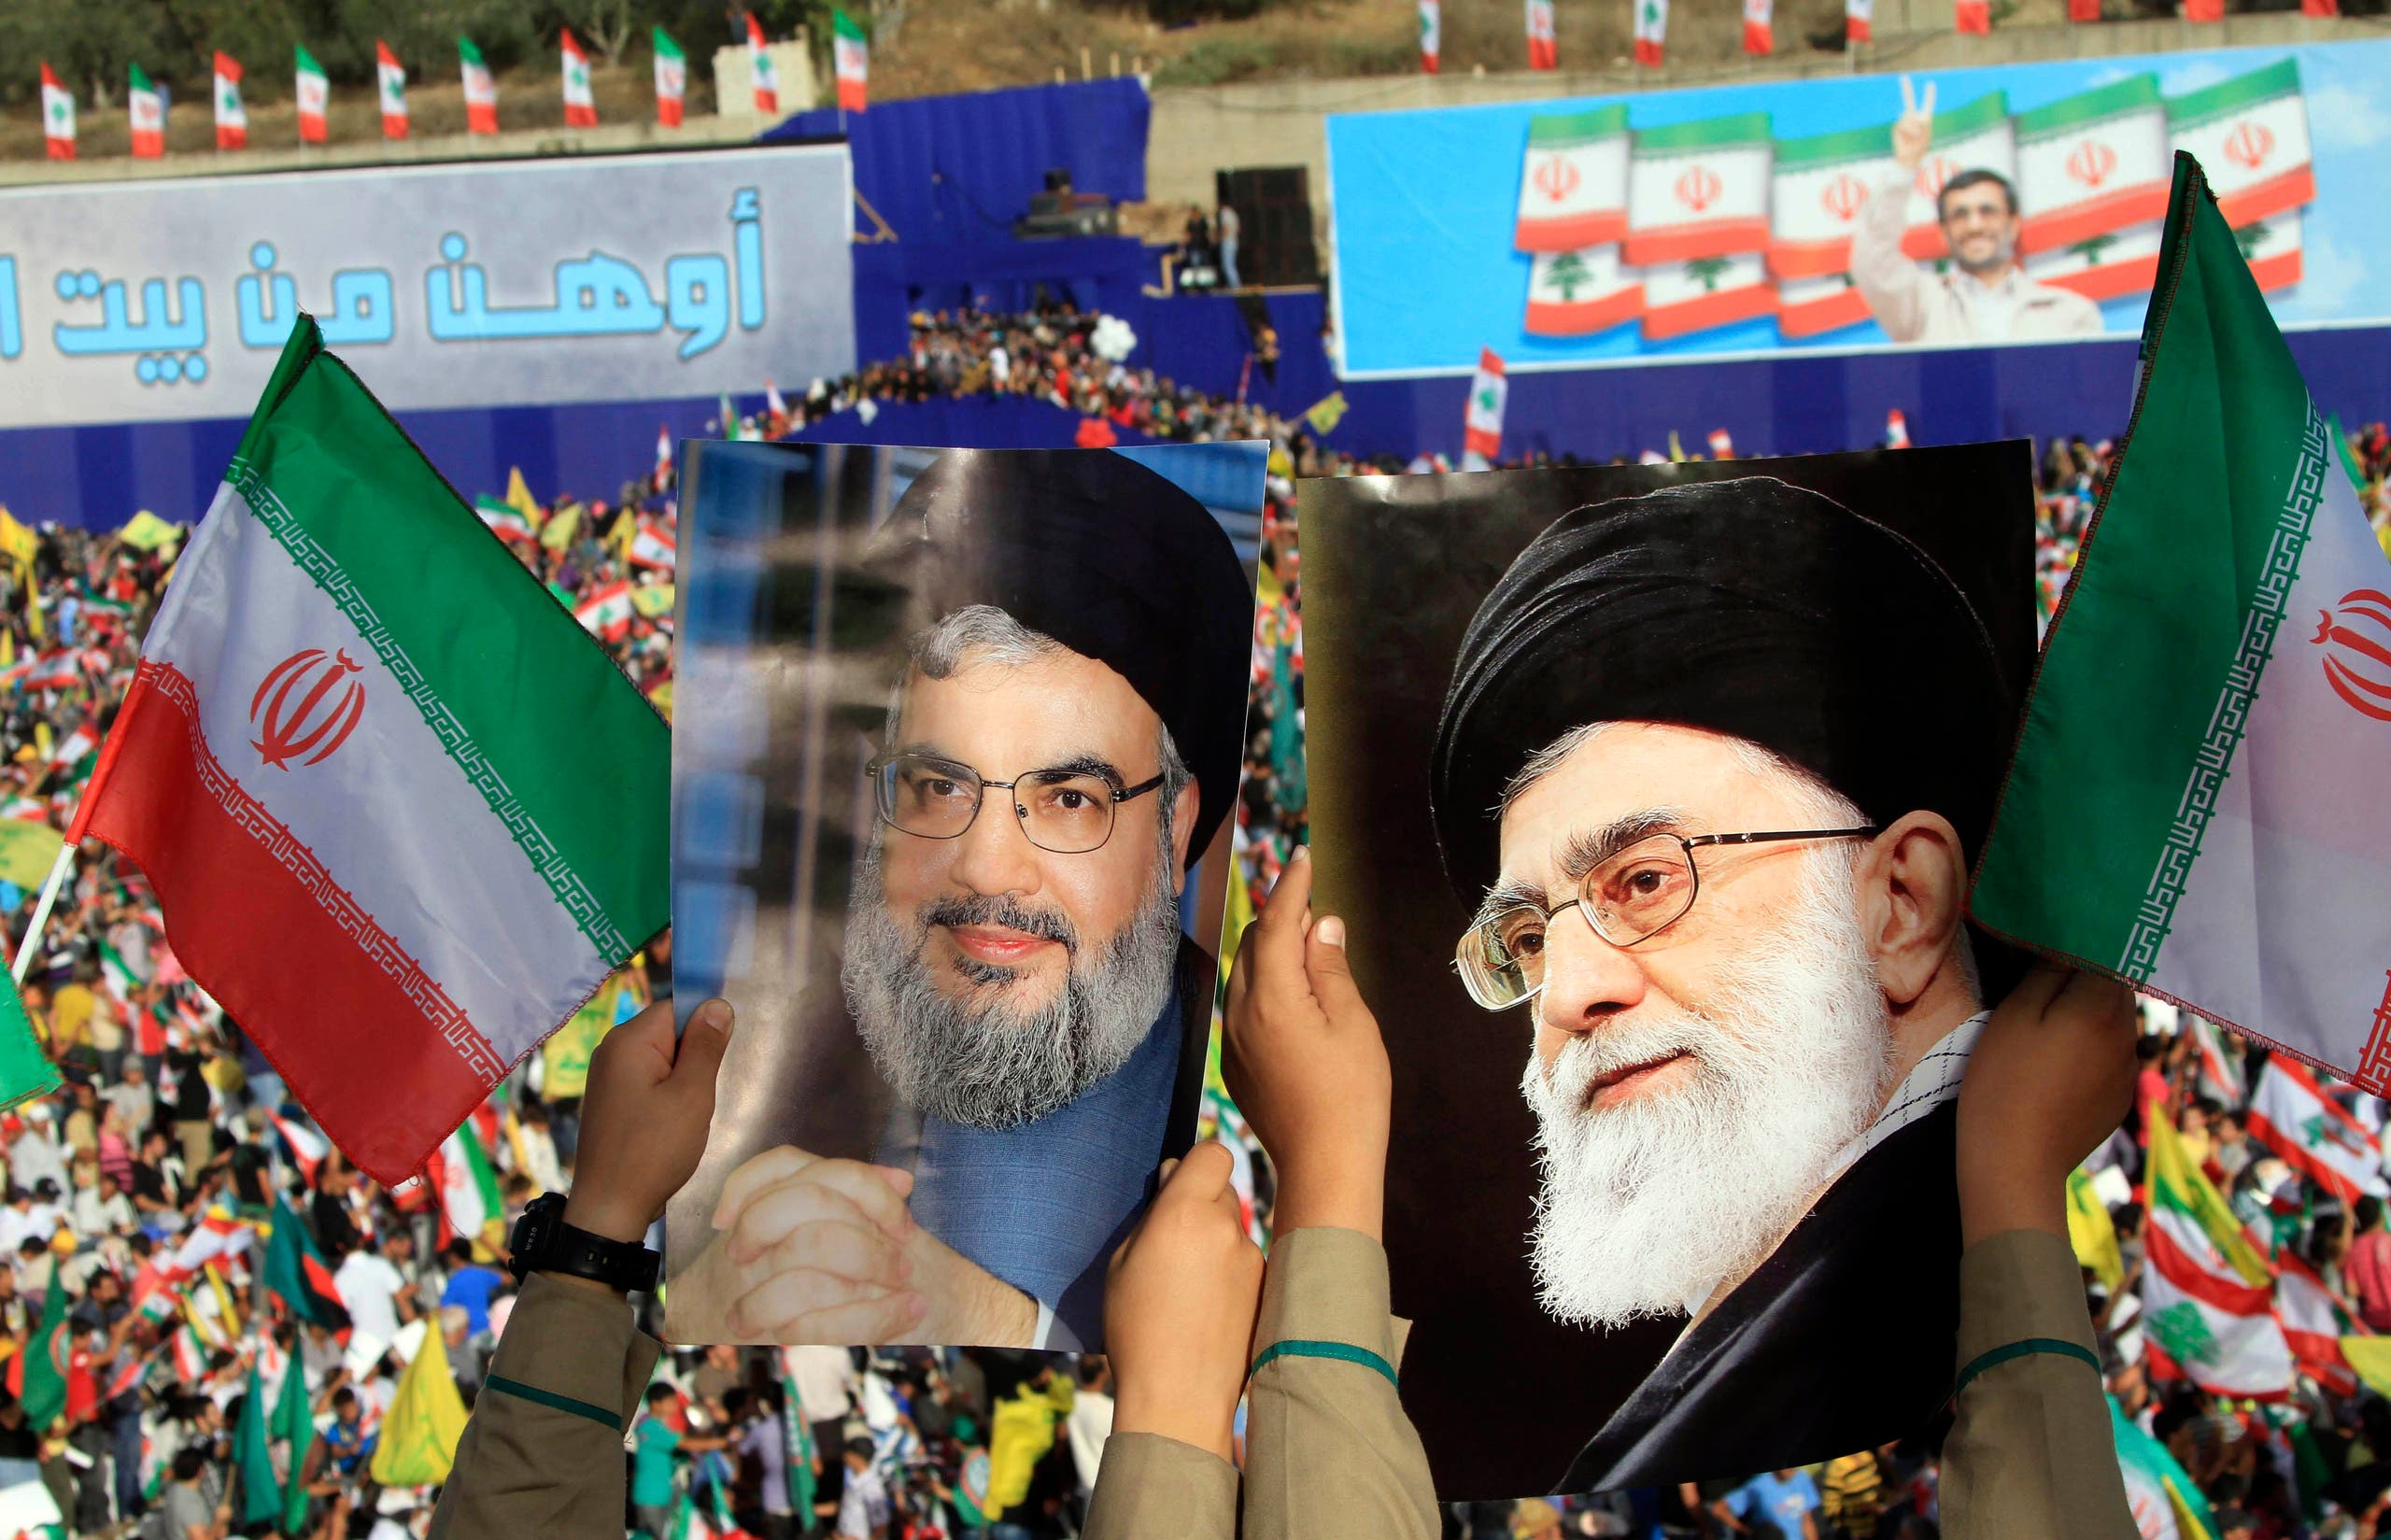 Two boys carry pictures of Hezbollah leader Hassan Nasrallah, left, and Iranian Supreme Leader Ali Khamenei in the southern town of Bint Jbeil, Lebanon. (File photo: AP)